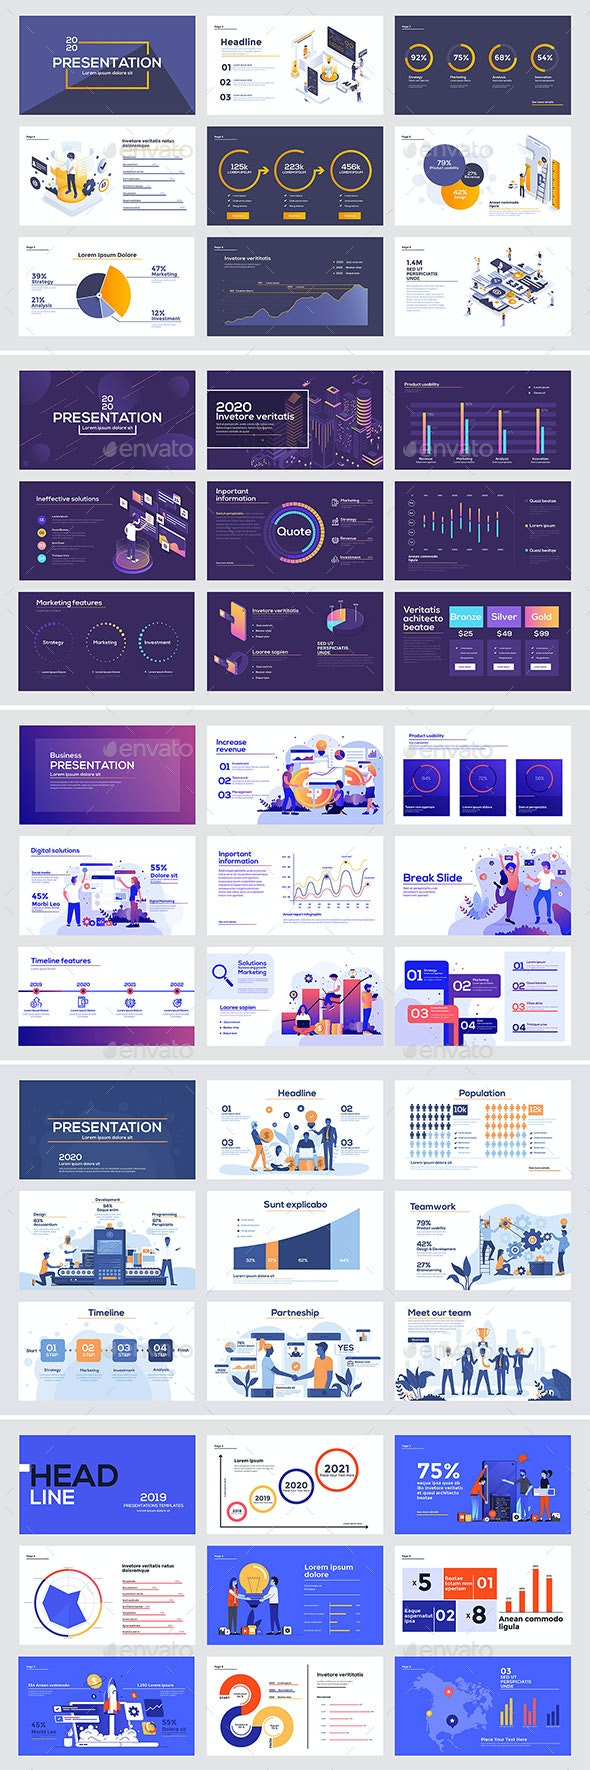 Presentation Slide Templates - Web Elements Vectors